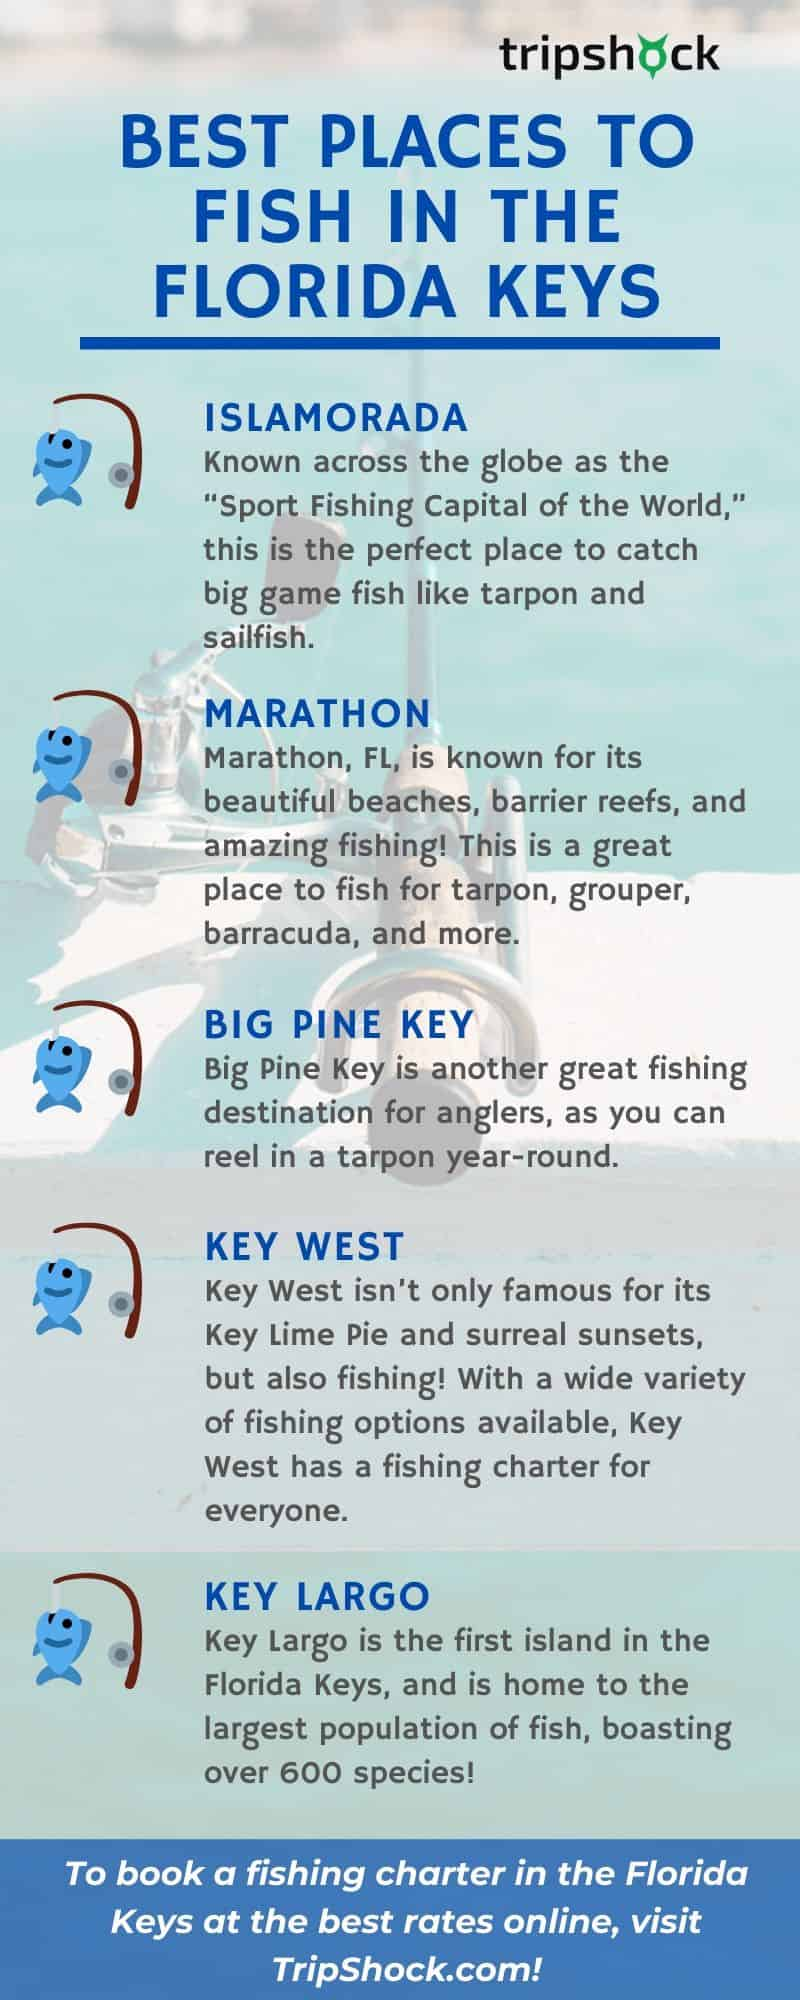 Best Places to Fish in the Florida Keys